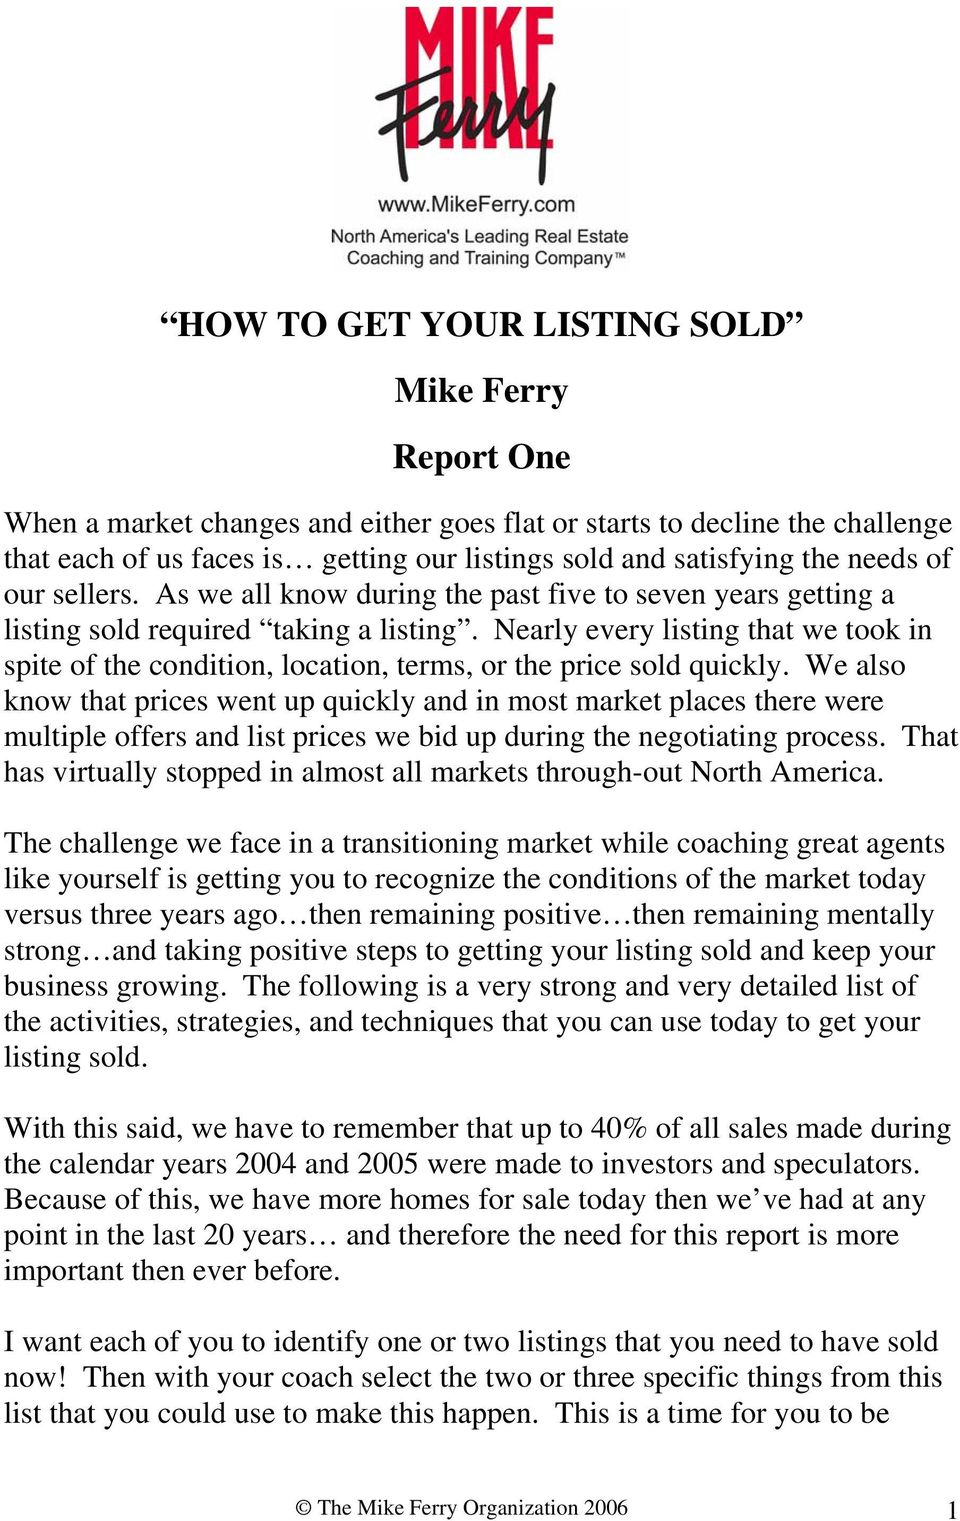 HOW TO GET YOUR LISTING SOLD Mike Ferry Report One - PDF